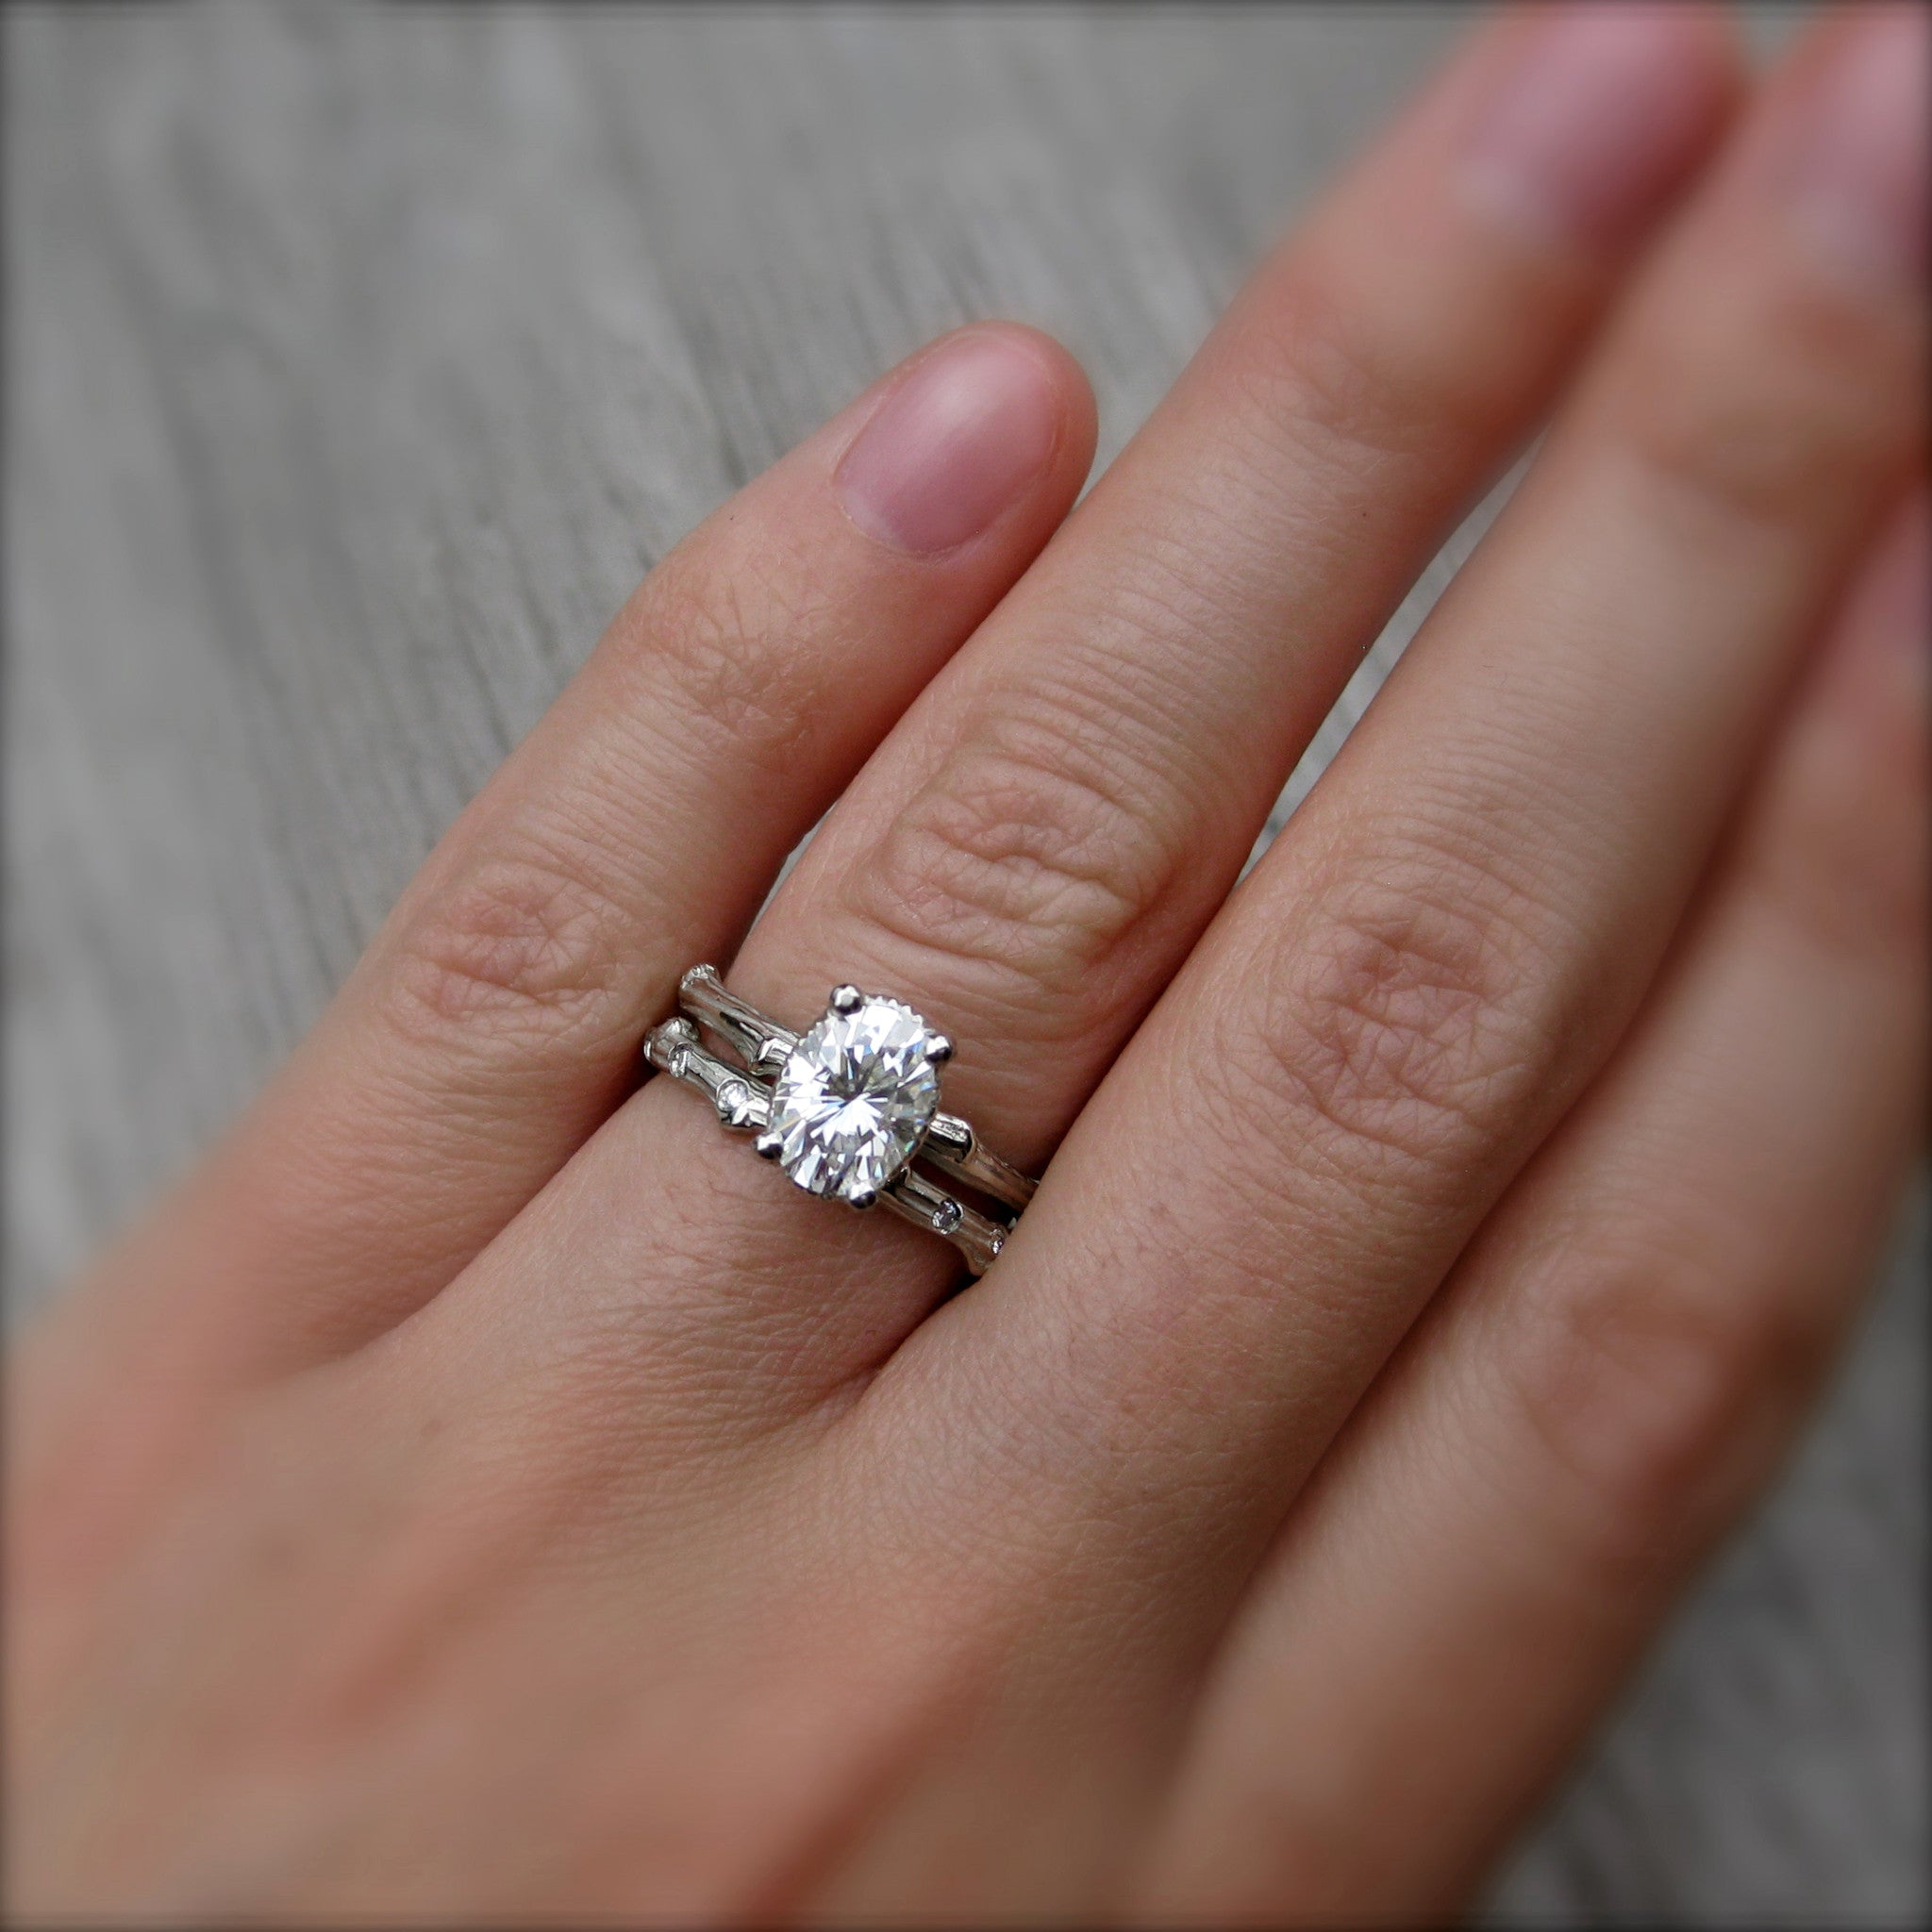 ... Oval Forever Brilliant Moissanite Twig Engagement Ring, 1.5carat ...